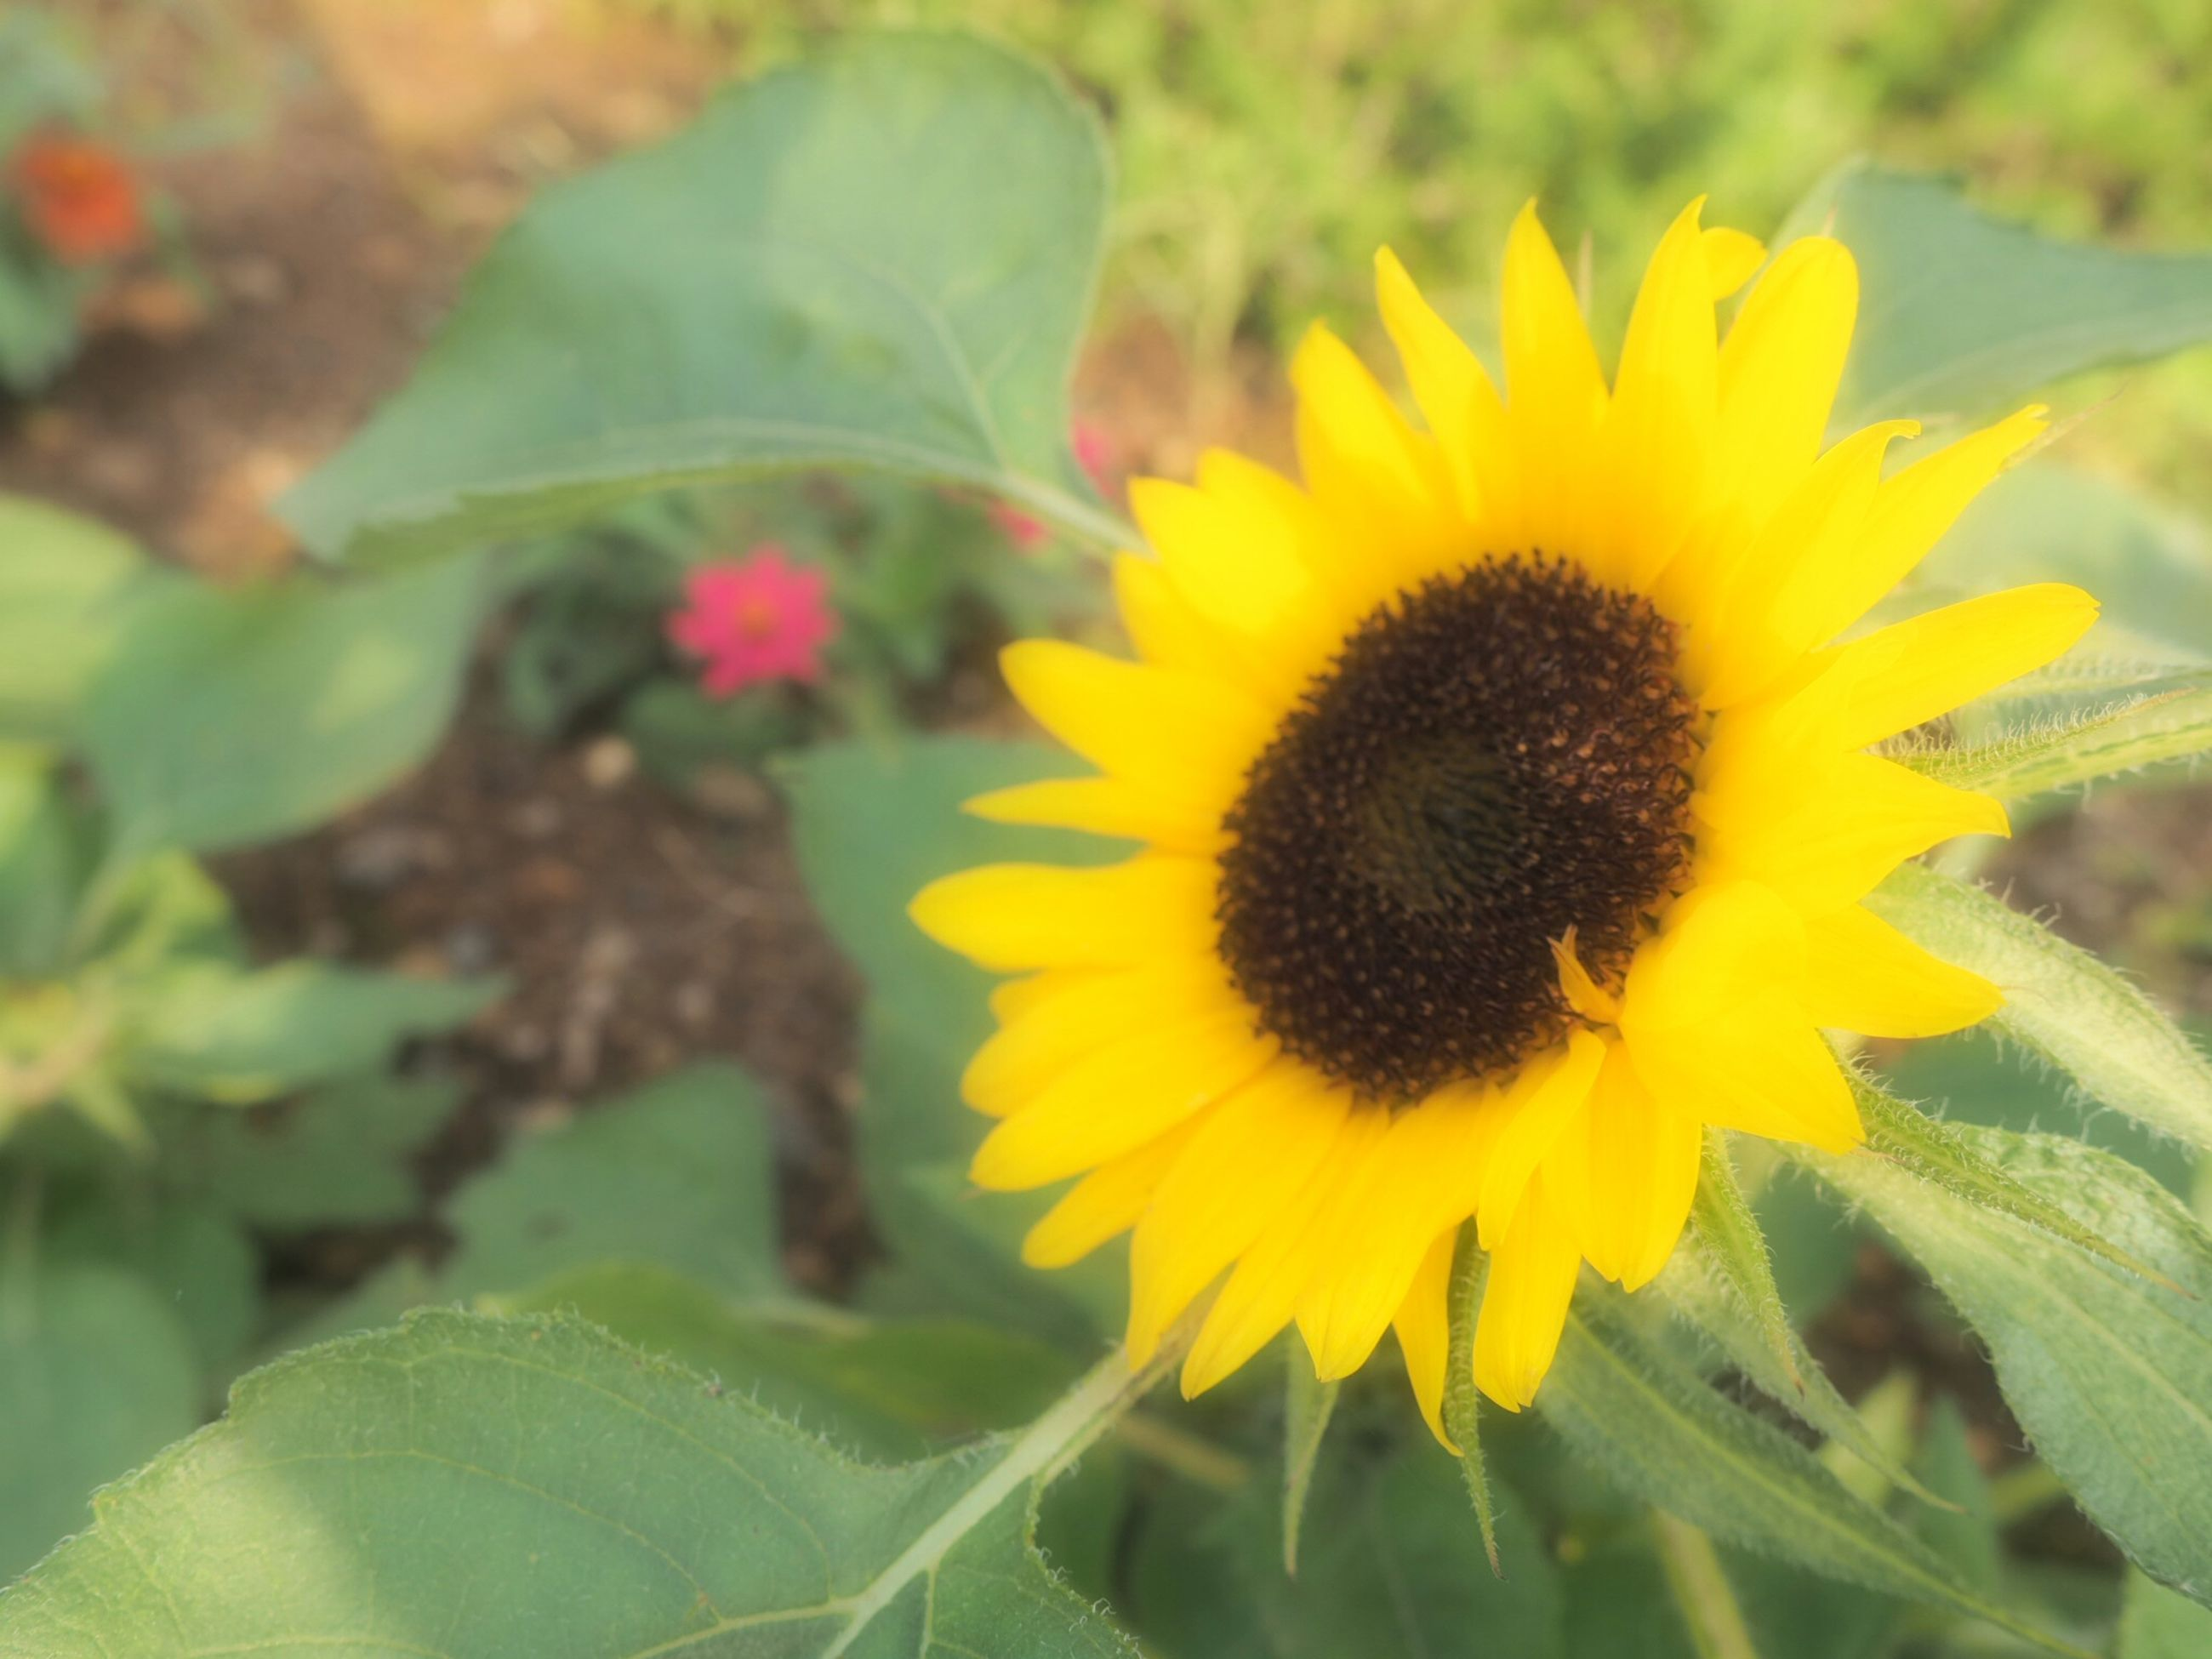 flower, freshness, yellow, flower head, fragility, petal, growth, sunflower, beauty in nature, plant, close-up, blooming, single flower, nature, leaf, focus on foreground, pollen, in bloom, outdoors, day